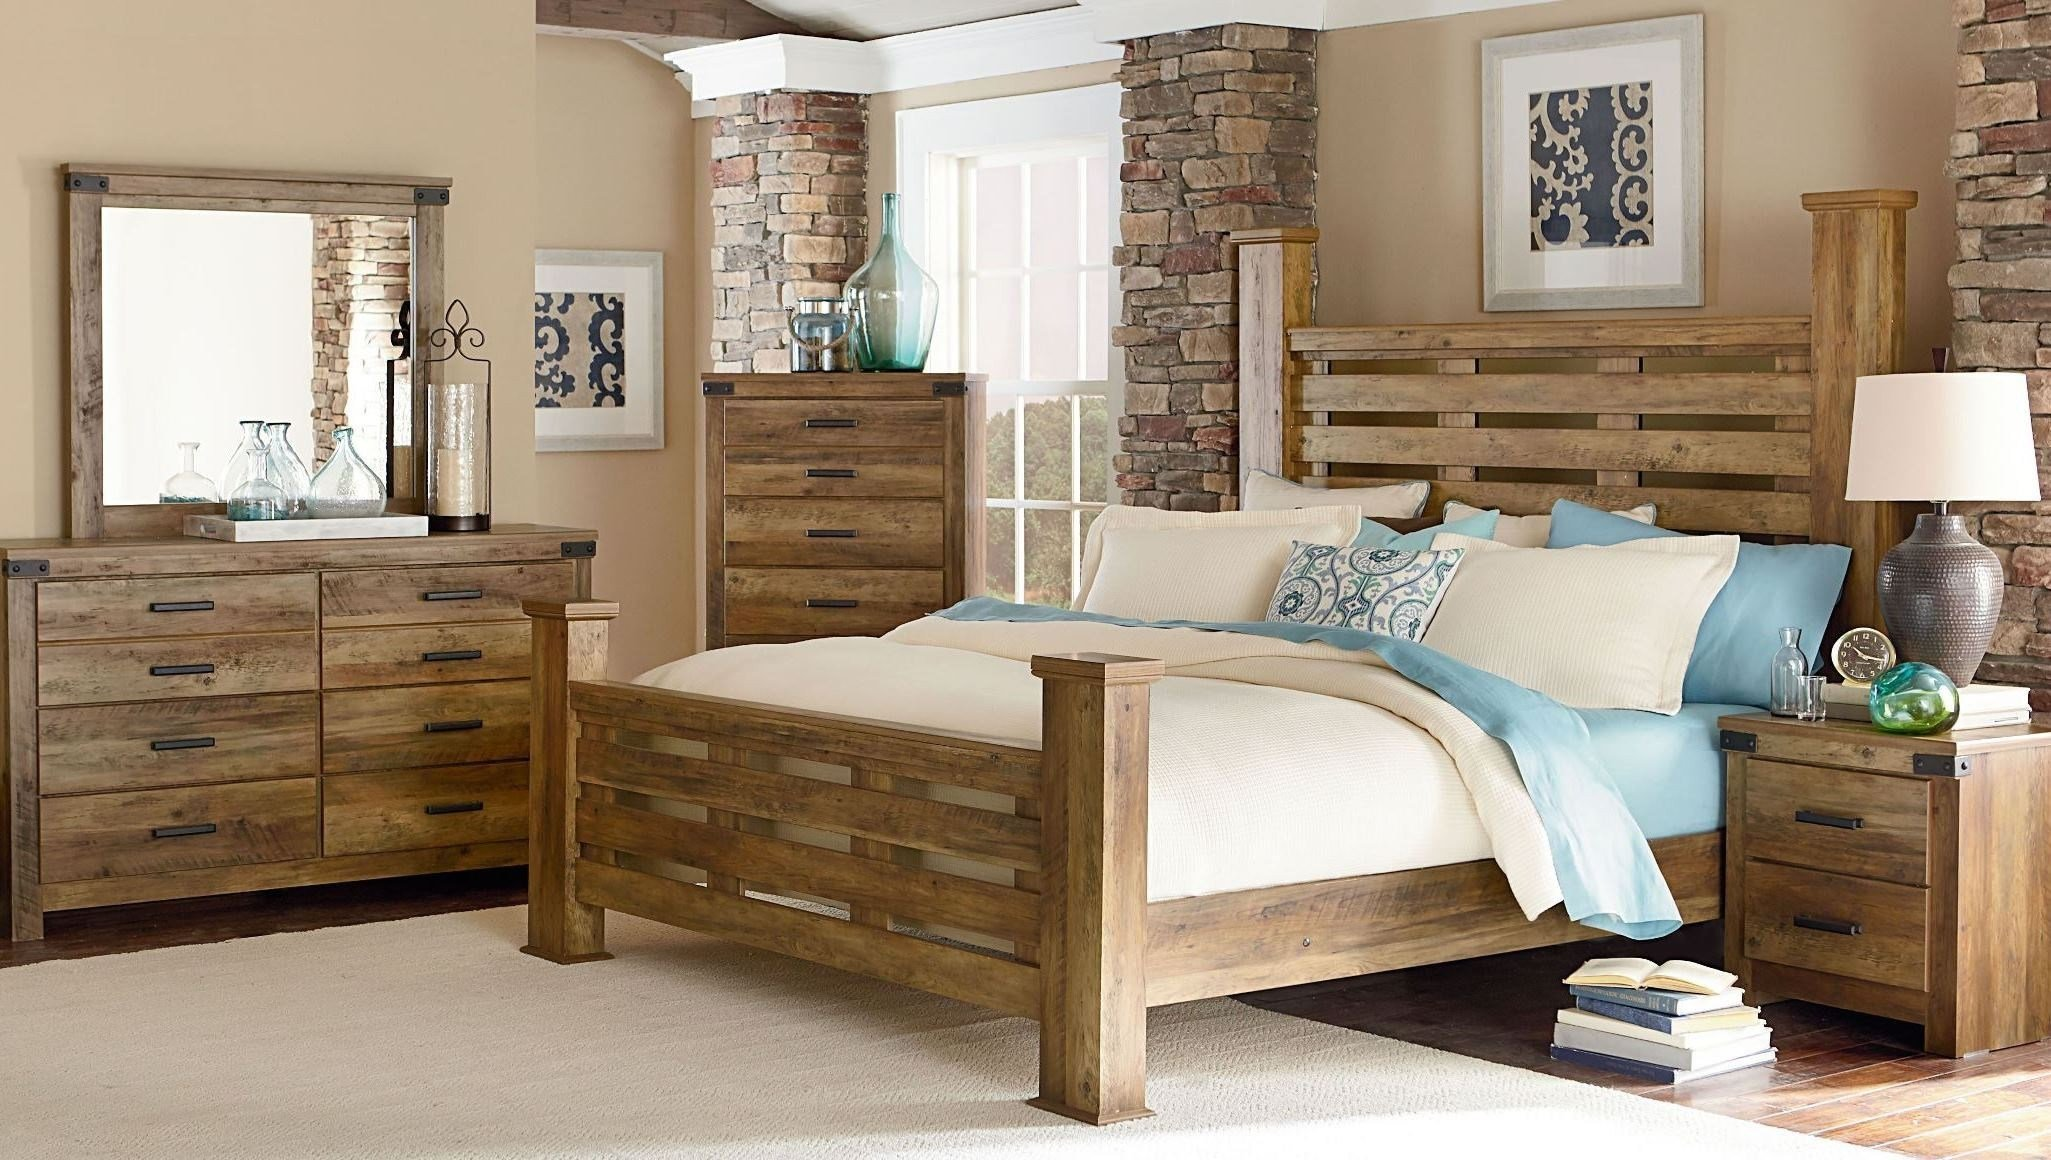 Best Montana Rustic Buckskin Poster Bedroom Set From Standard Furniture Coleman Furniture With Pictures